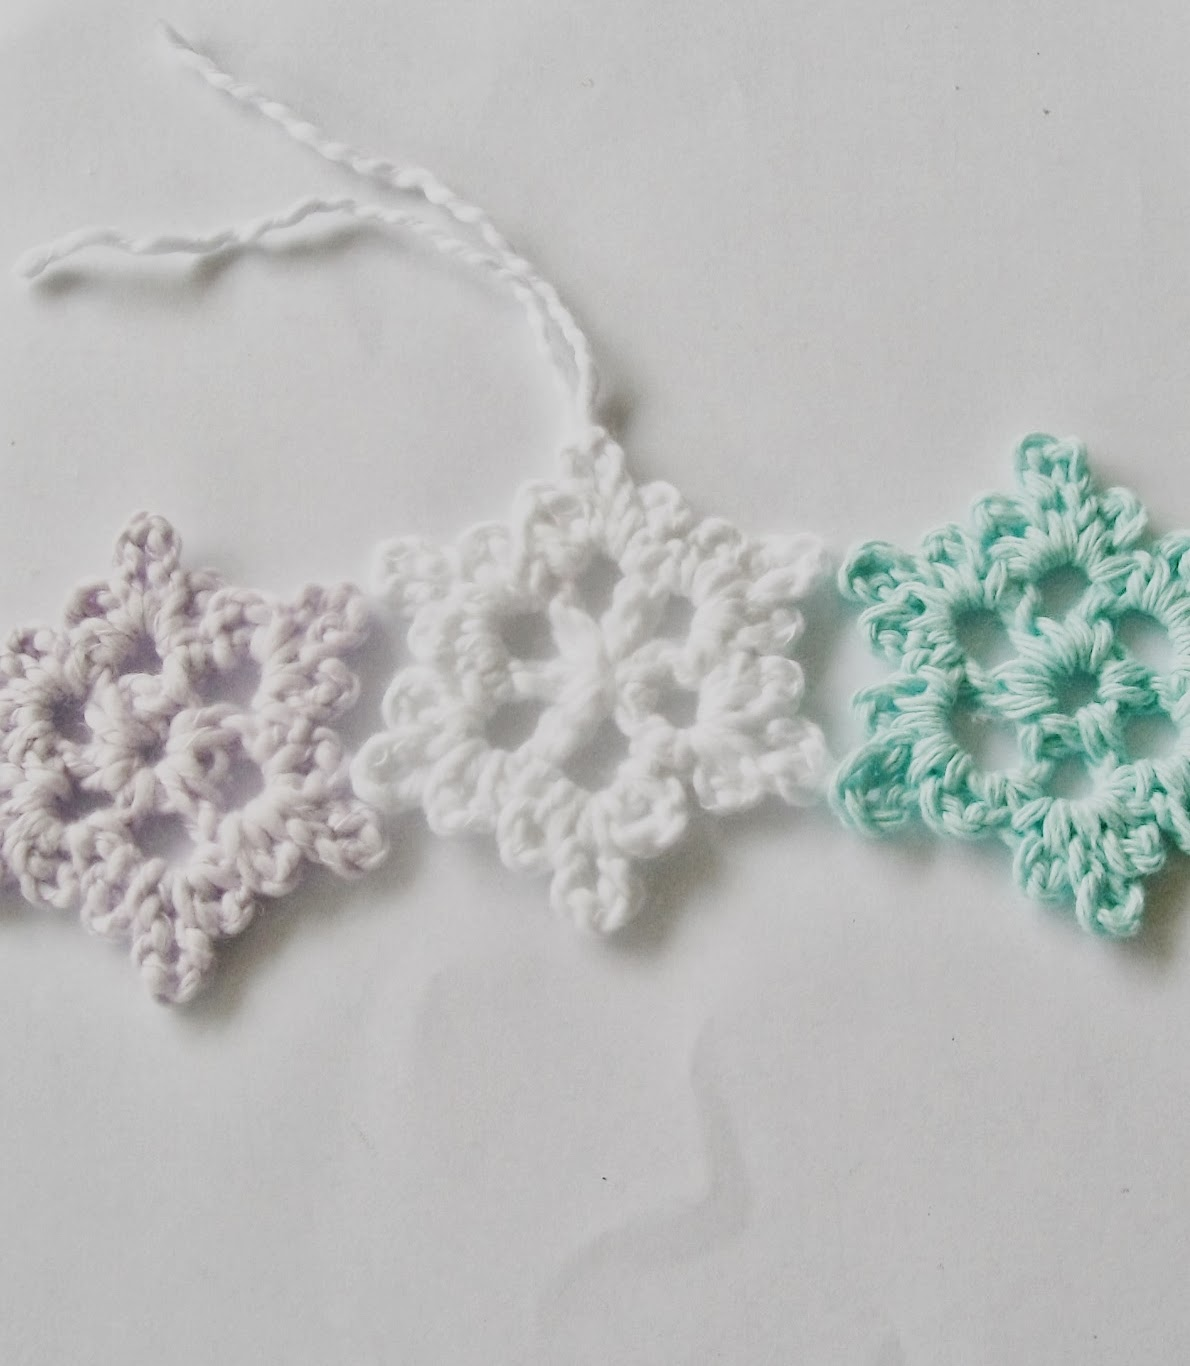 Crochet Snowflake Patterns Free Easy : Flower Girl Cottage : Easy Crochet Snowflake Pattern